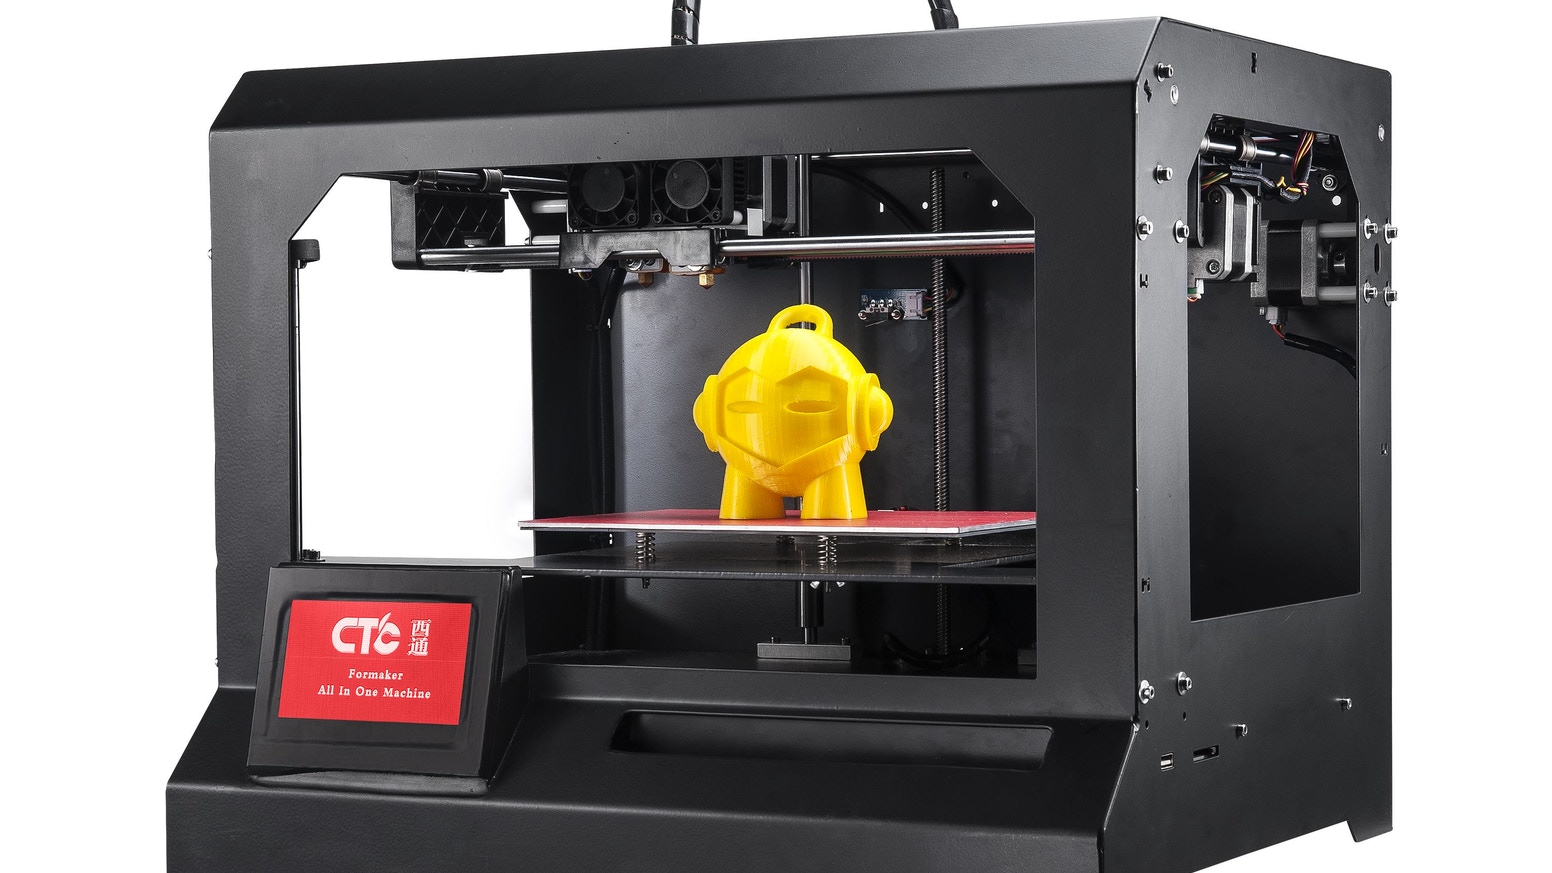 Formaker: A 4-in-1 3D Printer by Zhuhai CTC Electronic Co ,Ltd